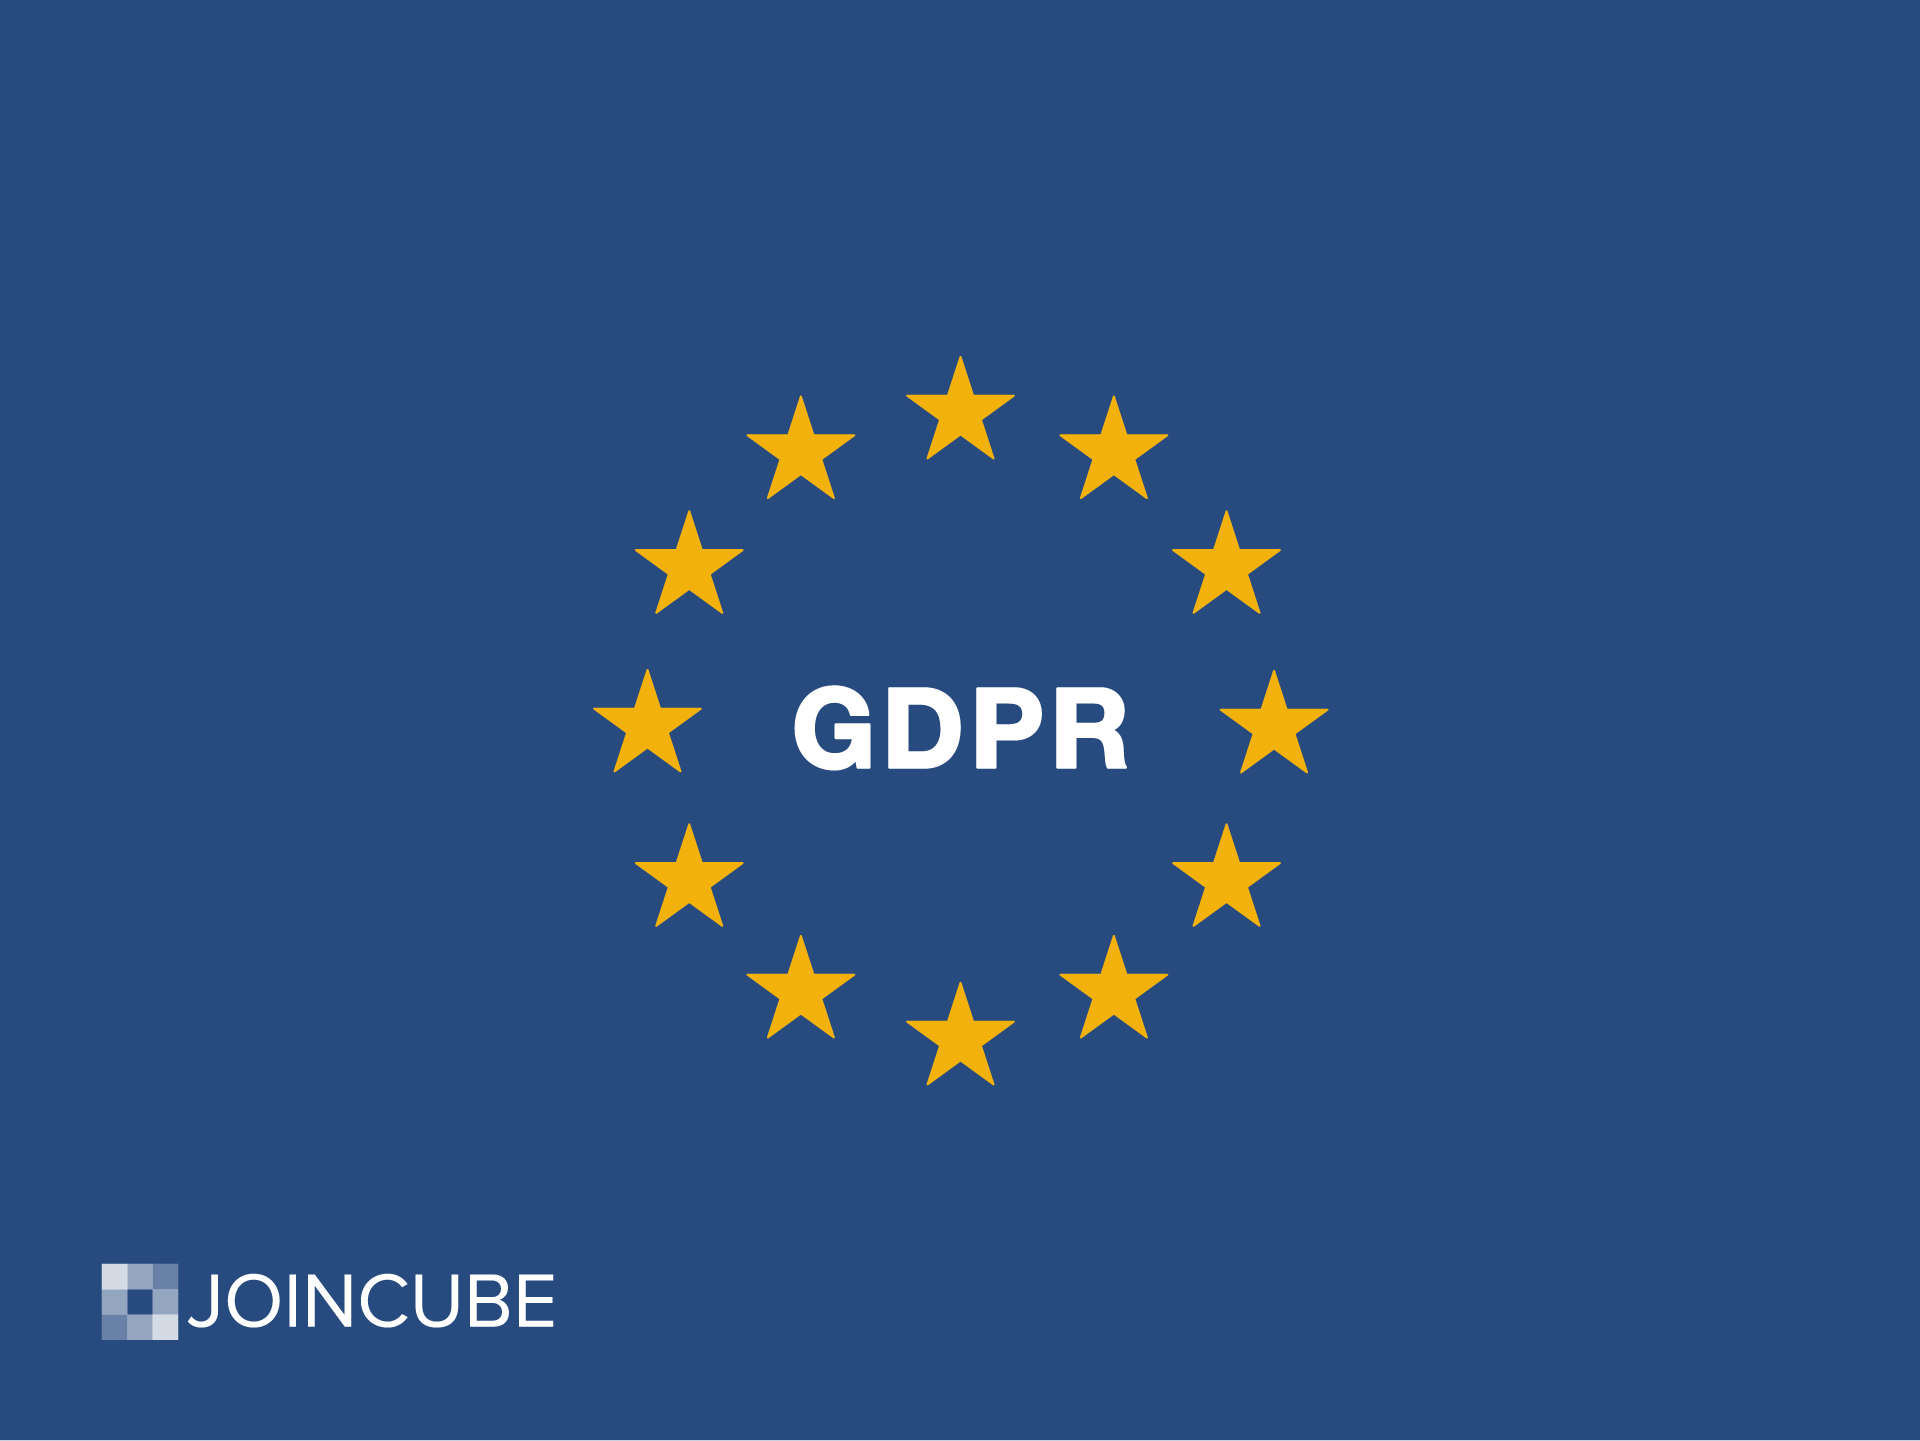 How Joincube is complying with GDPR